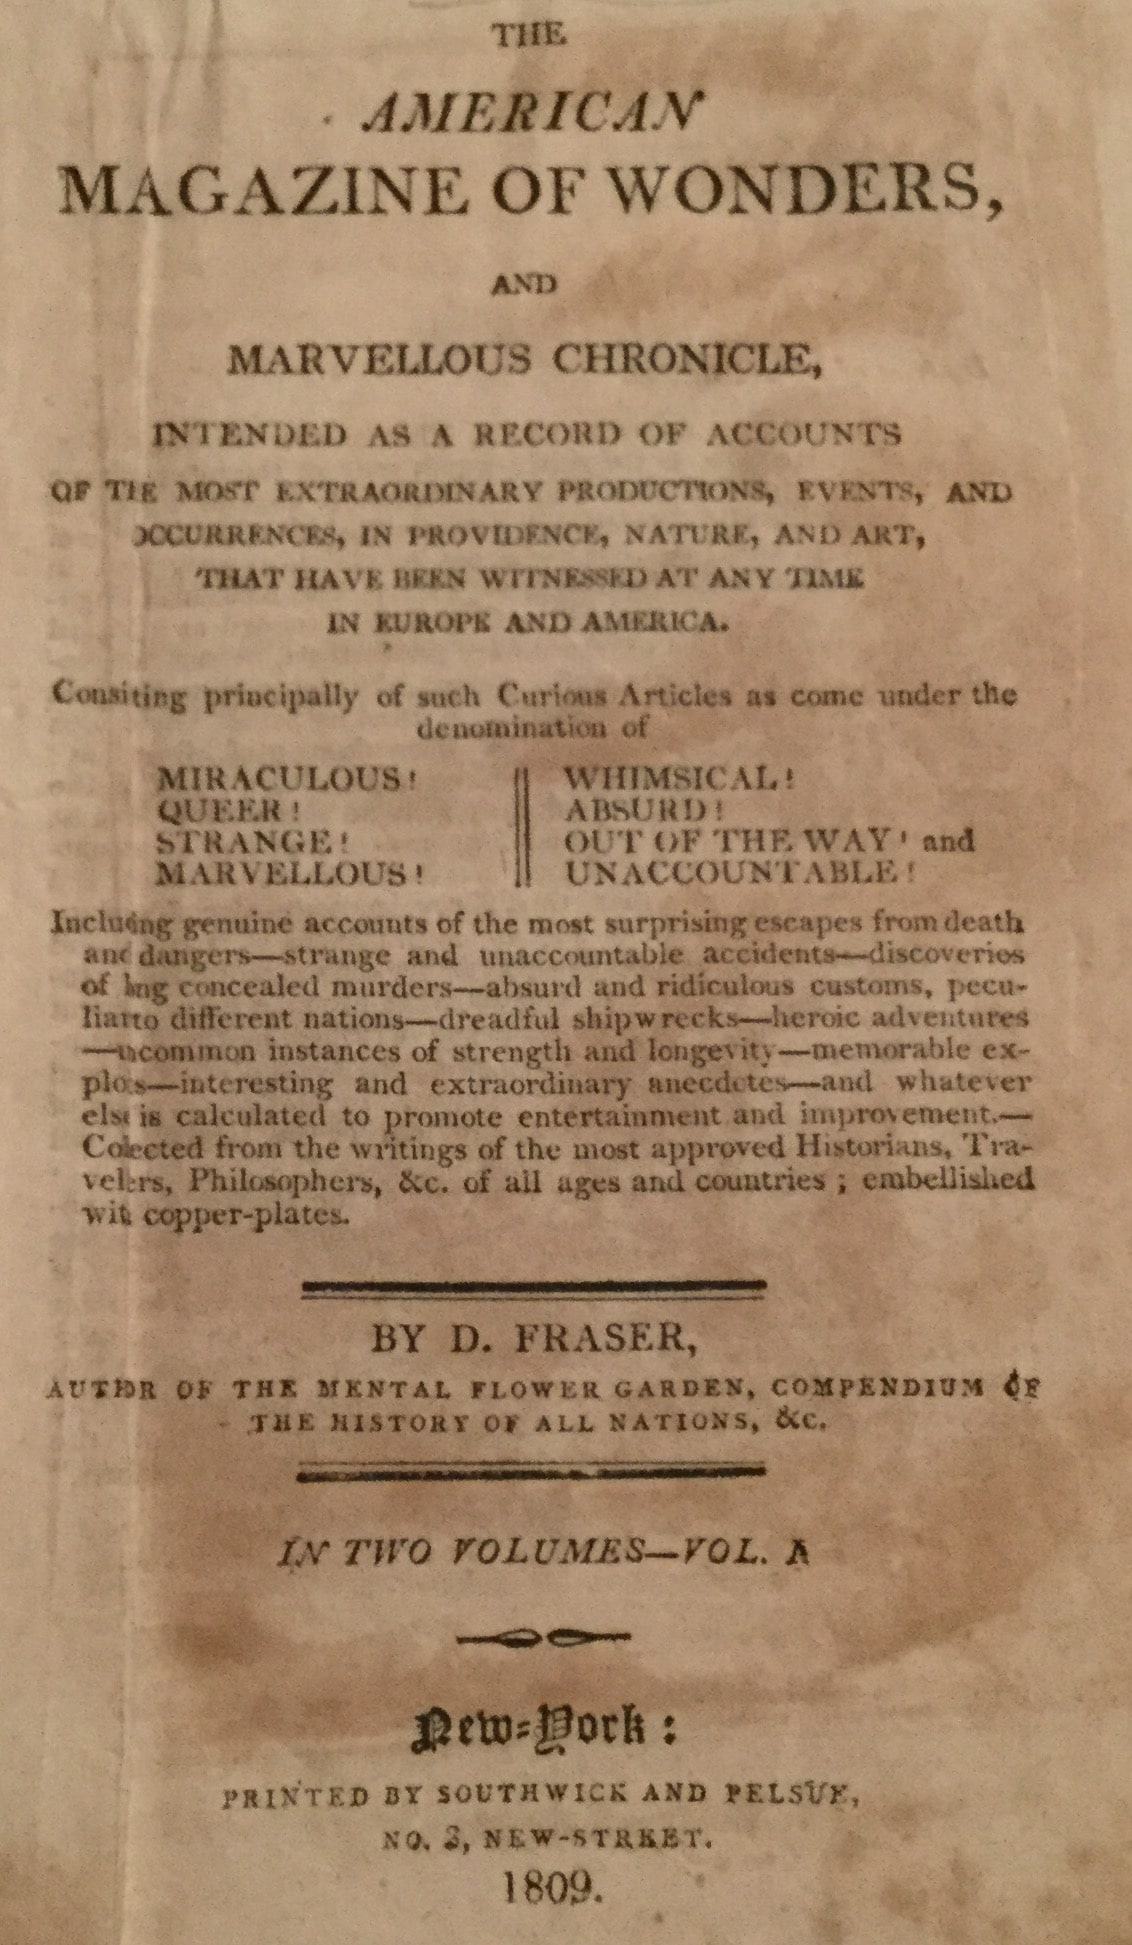 American Magazine of Wonders and Marvelous Chronicle, Intended as a Record of Accounts of the Most Extraordinary Productions, Events, and Occurrences, in Providence, Natura, and Art, that Have Been Witnessed at Any Time